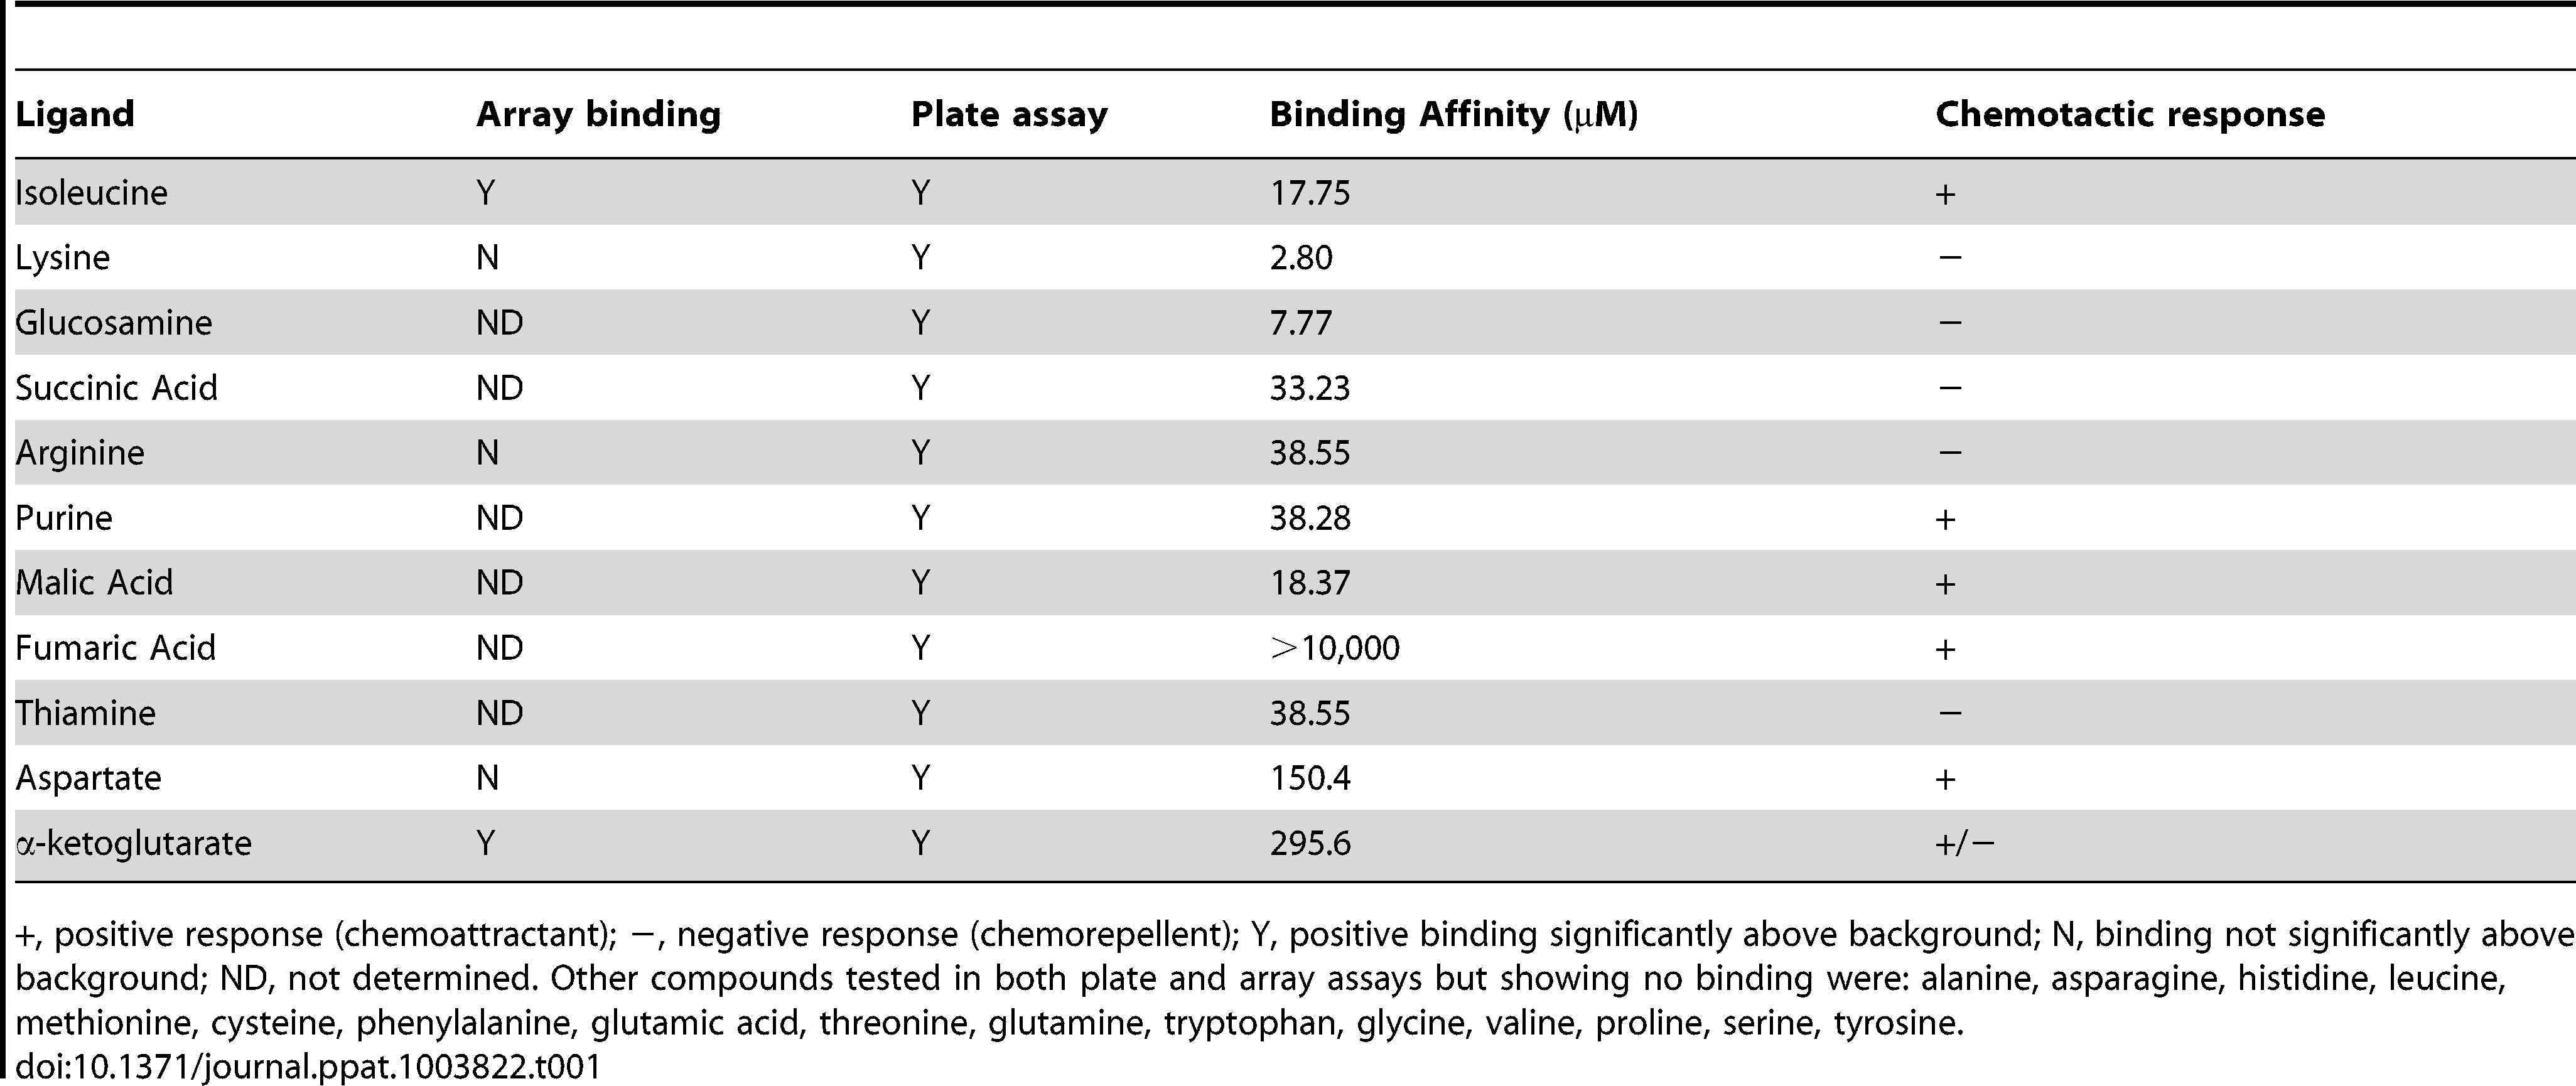 Summary of ligand binding and chemotactic response.